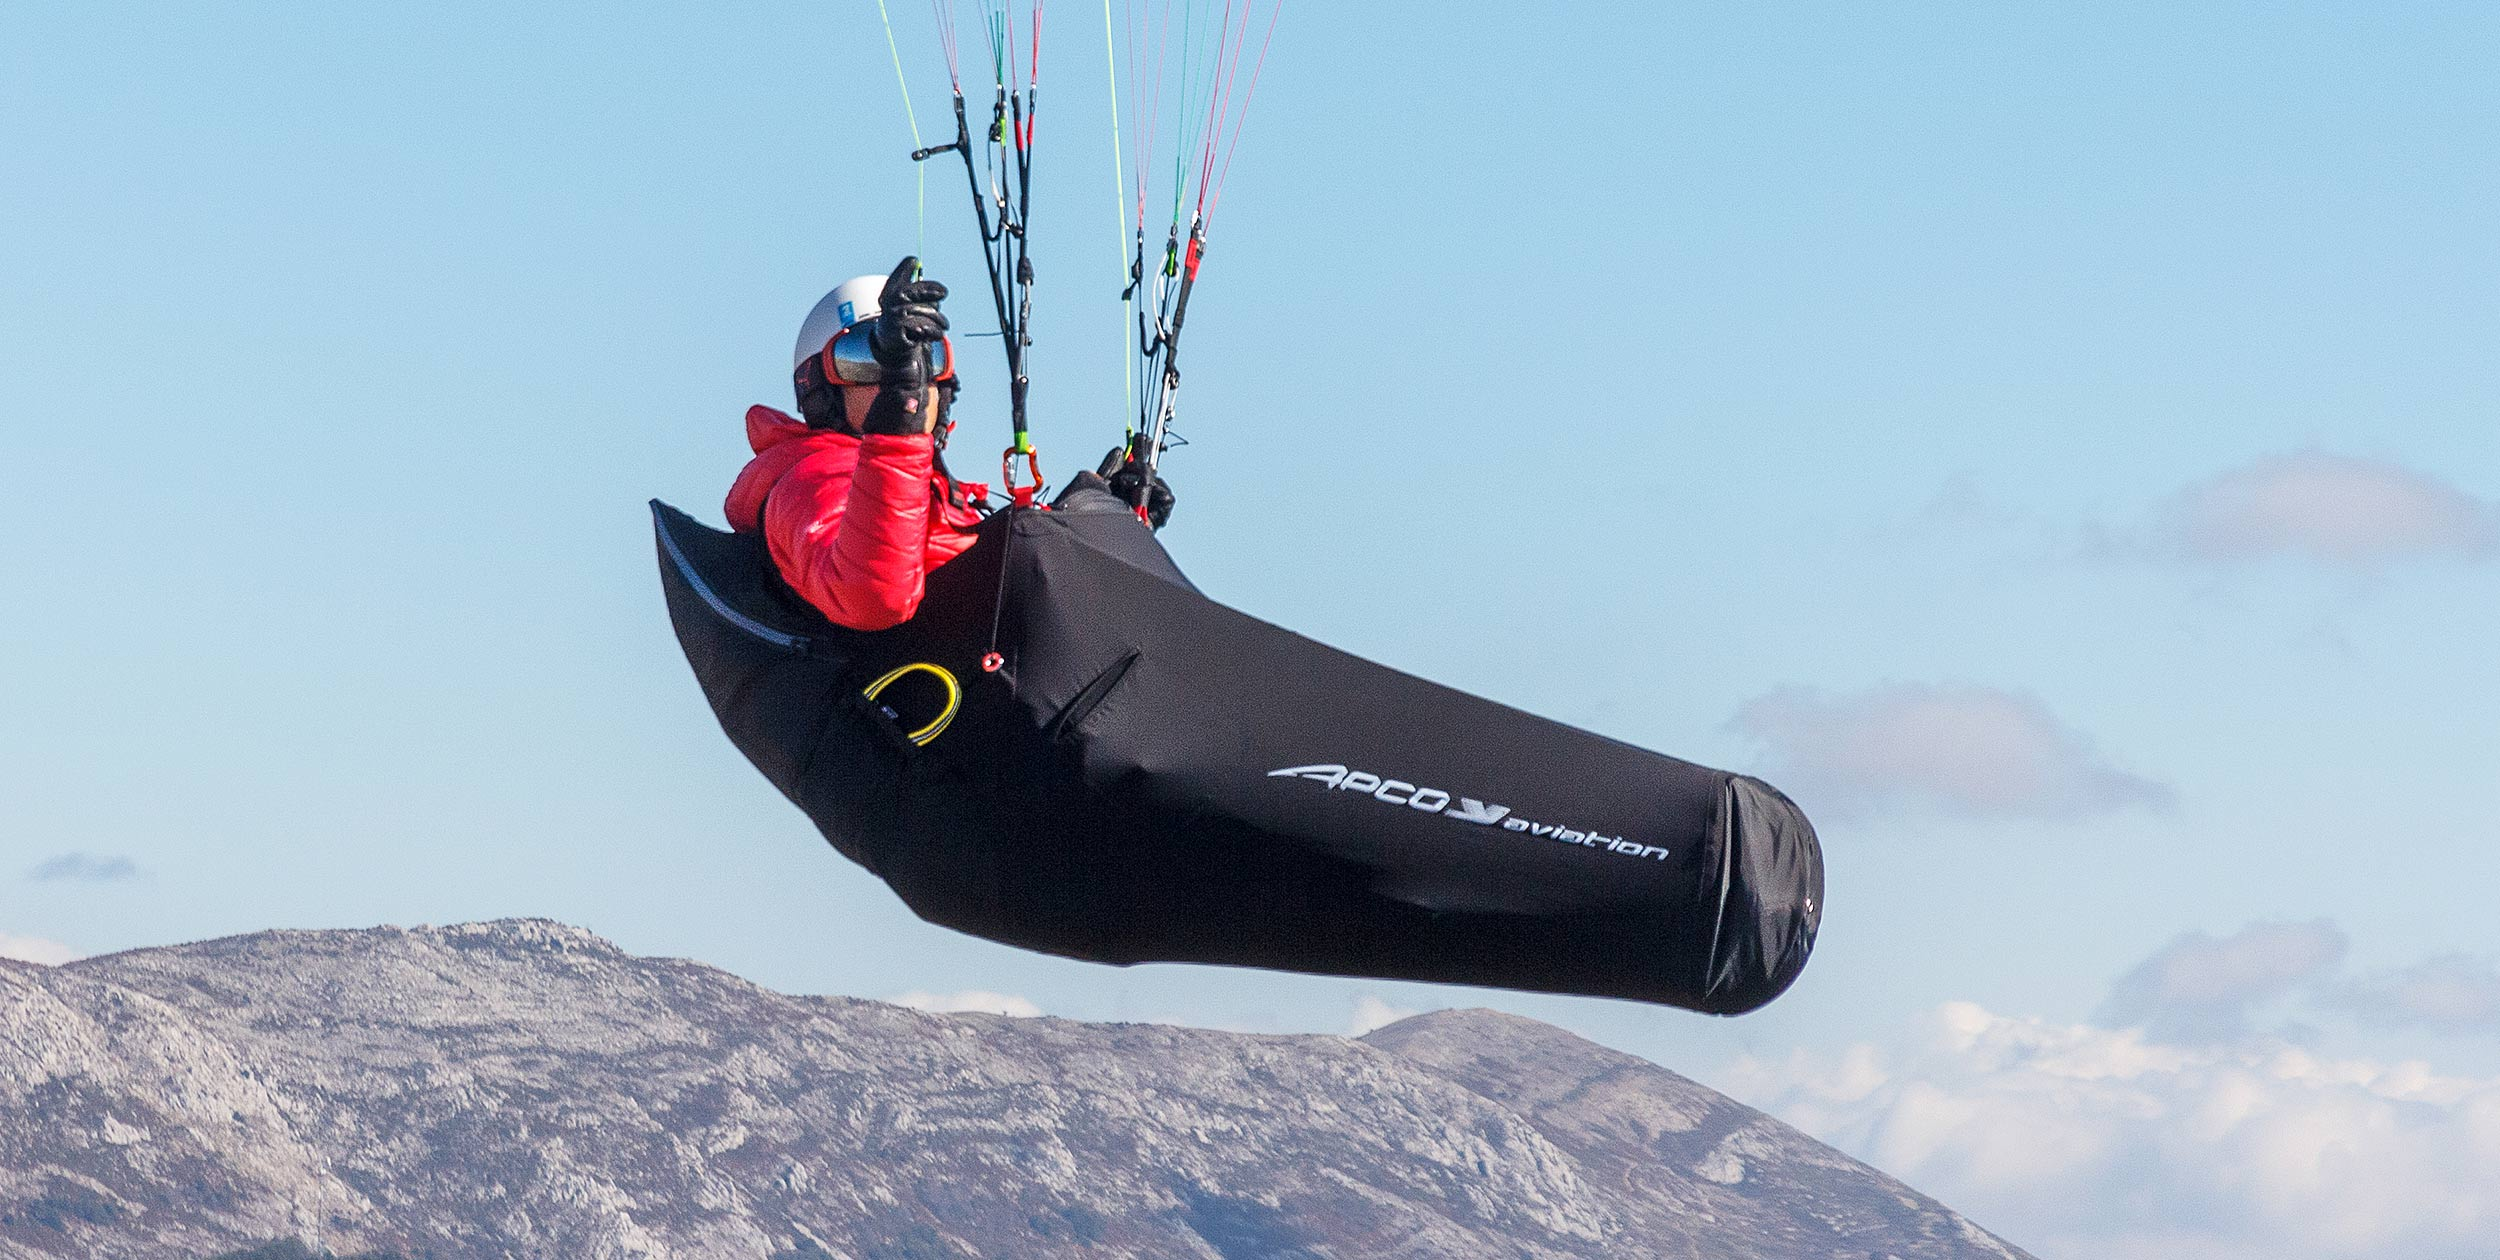 Apco Kitto Paraglider harness review